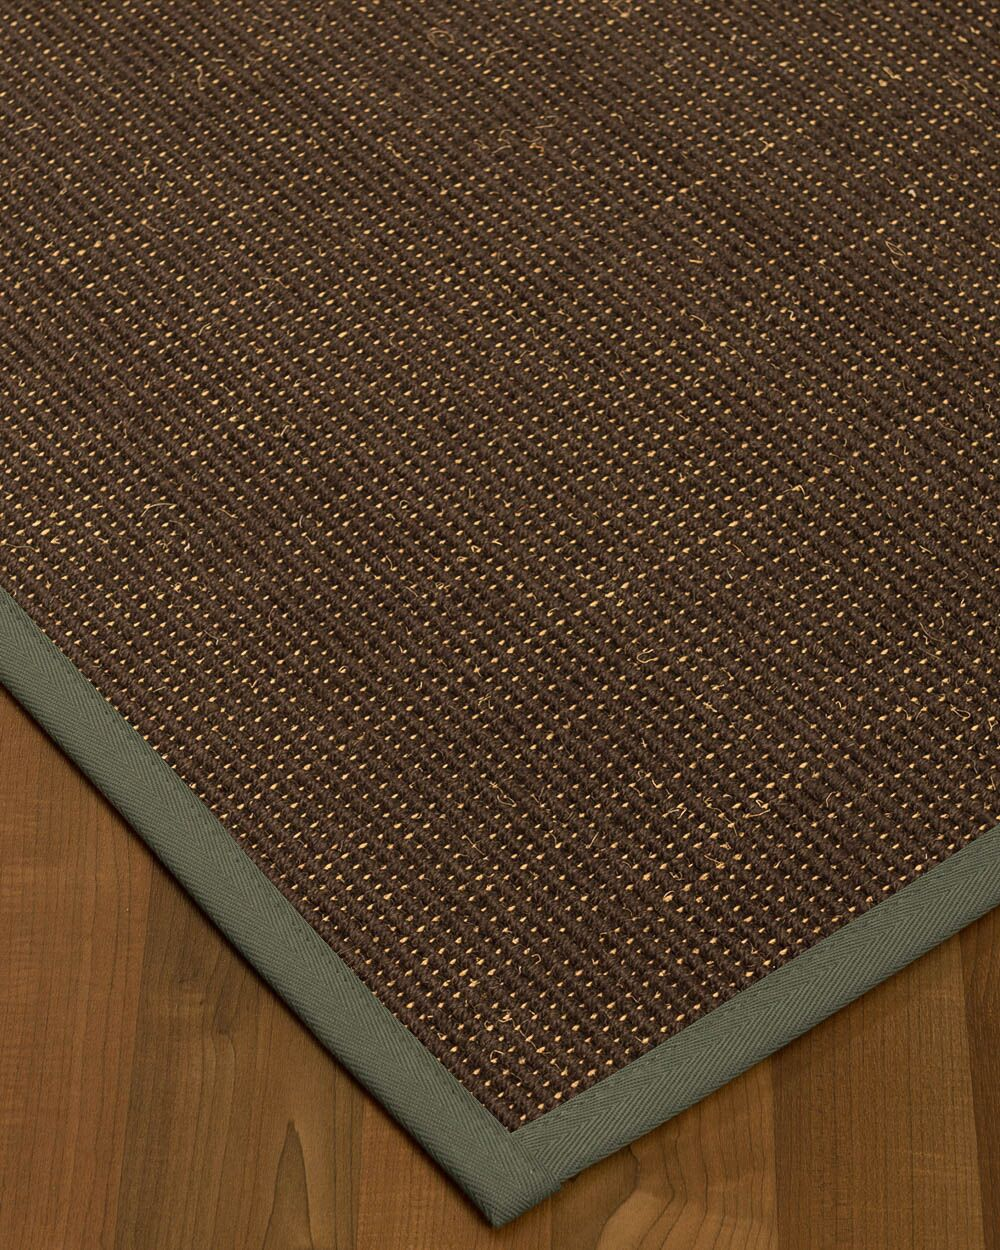 Kersh Border Hand-Woven Brown/Stone Area Rug Rug Size: Rectangle 8' x 10', Rug Pad Included: Yes